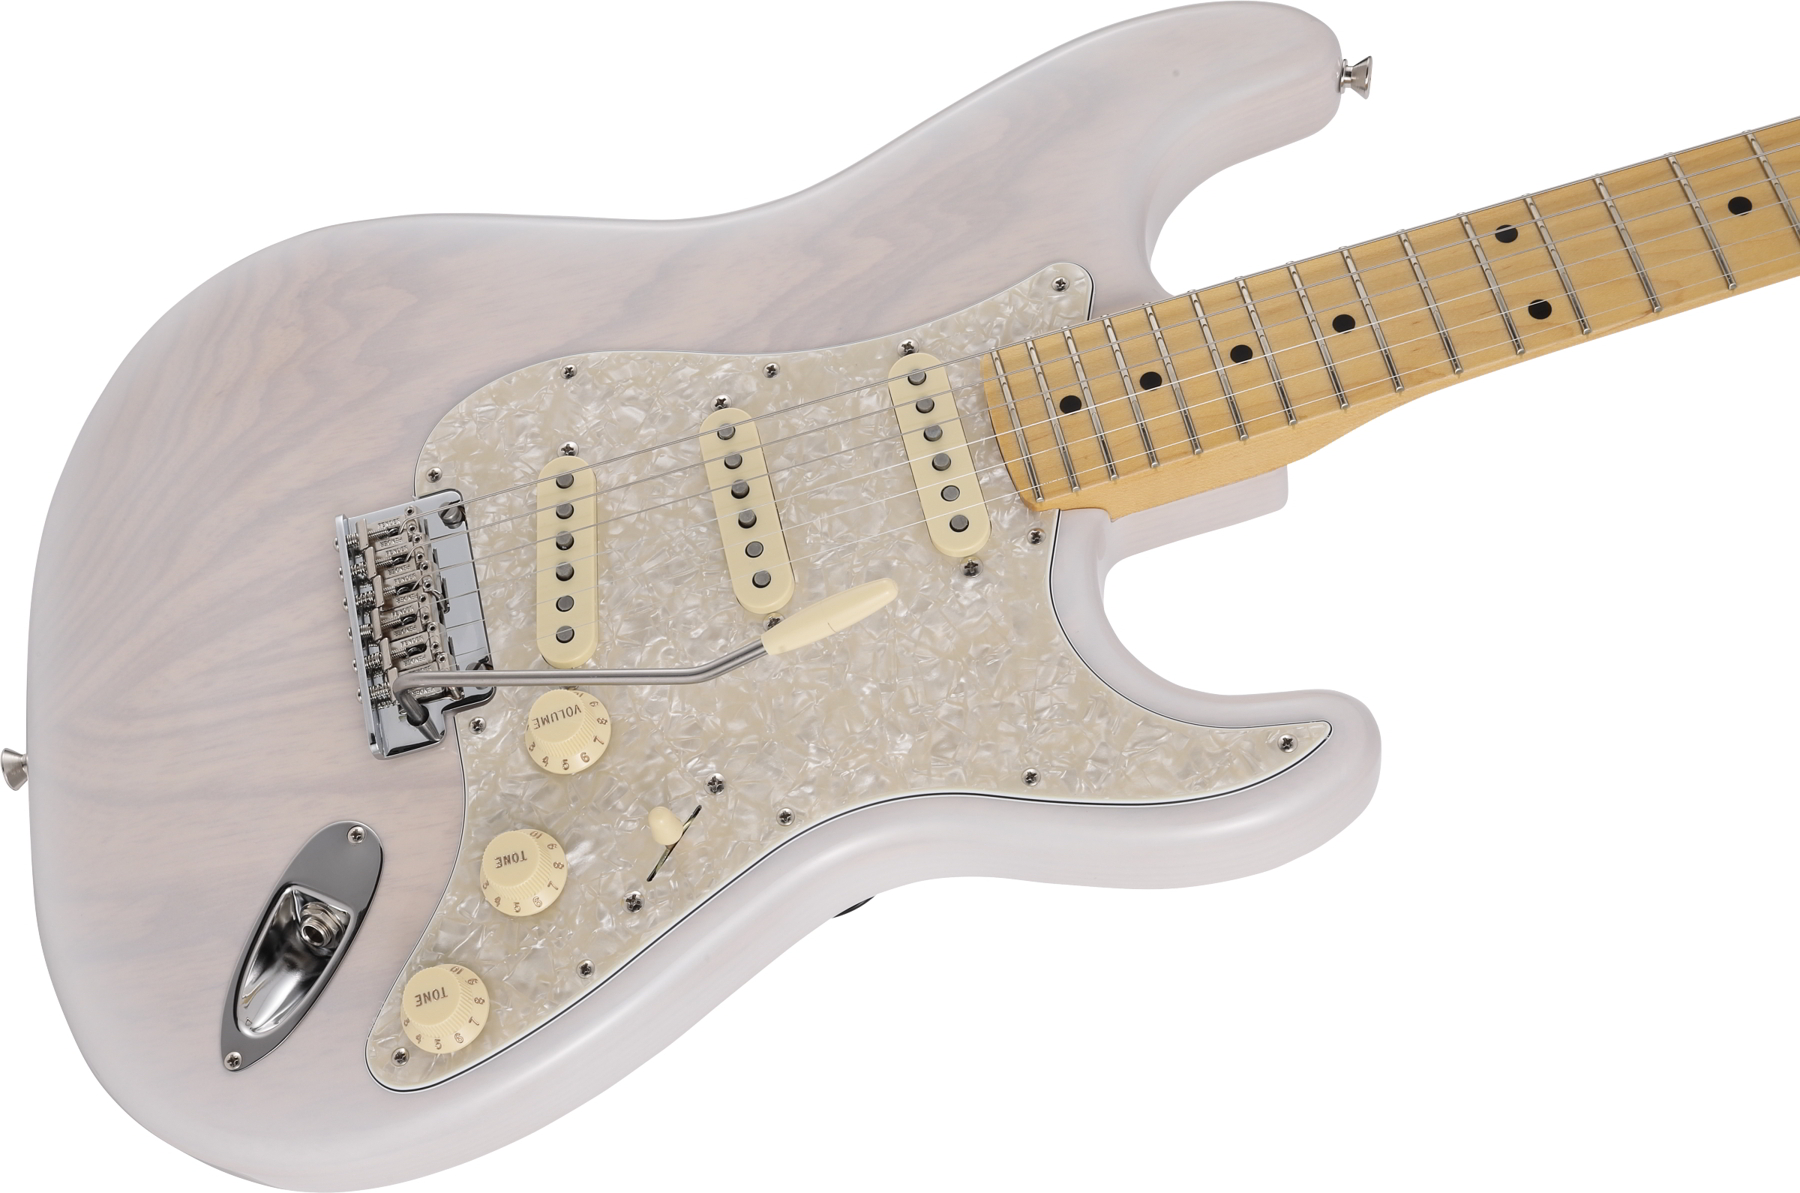 Made in Japan 2019 Limited Collection Stratocaster Maple Fingerboard White Blonde追加画像